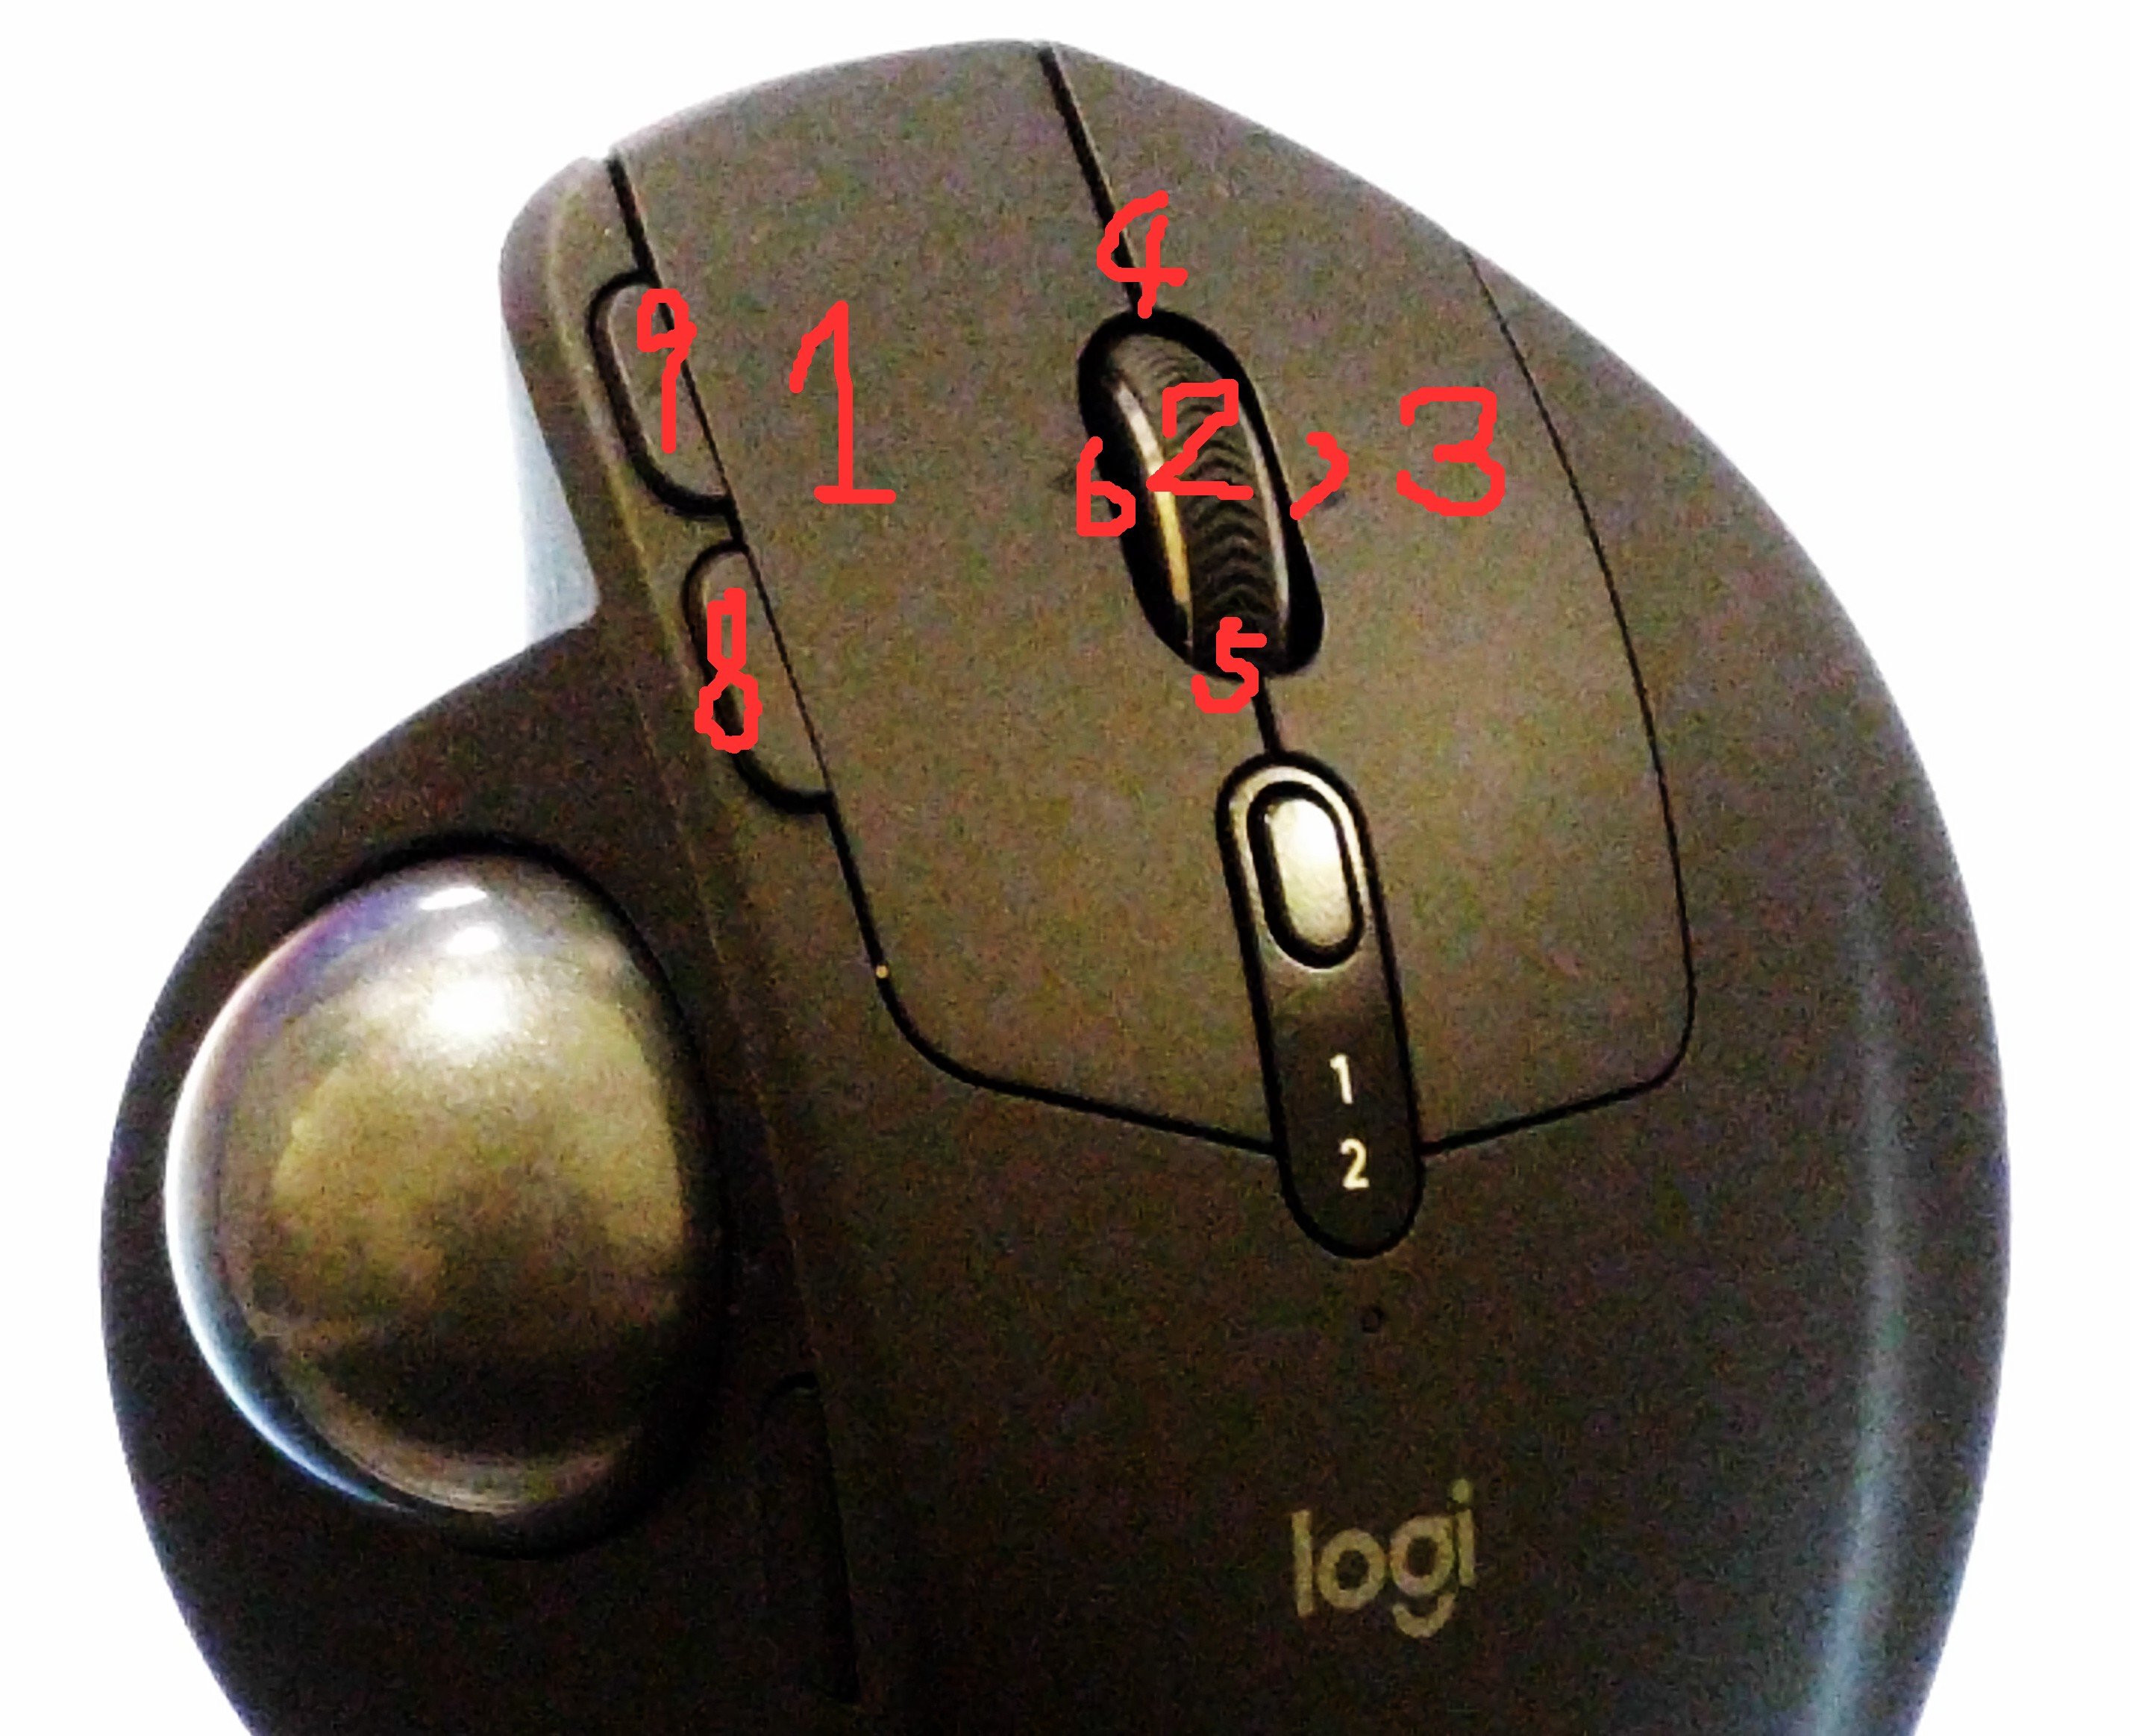 Bind Mouse Buttons to Keys or Scripts under Linux with